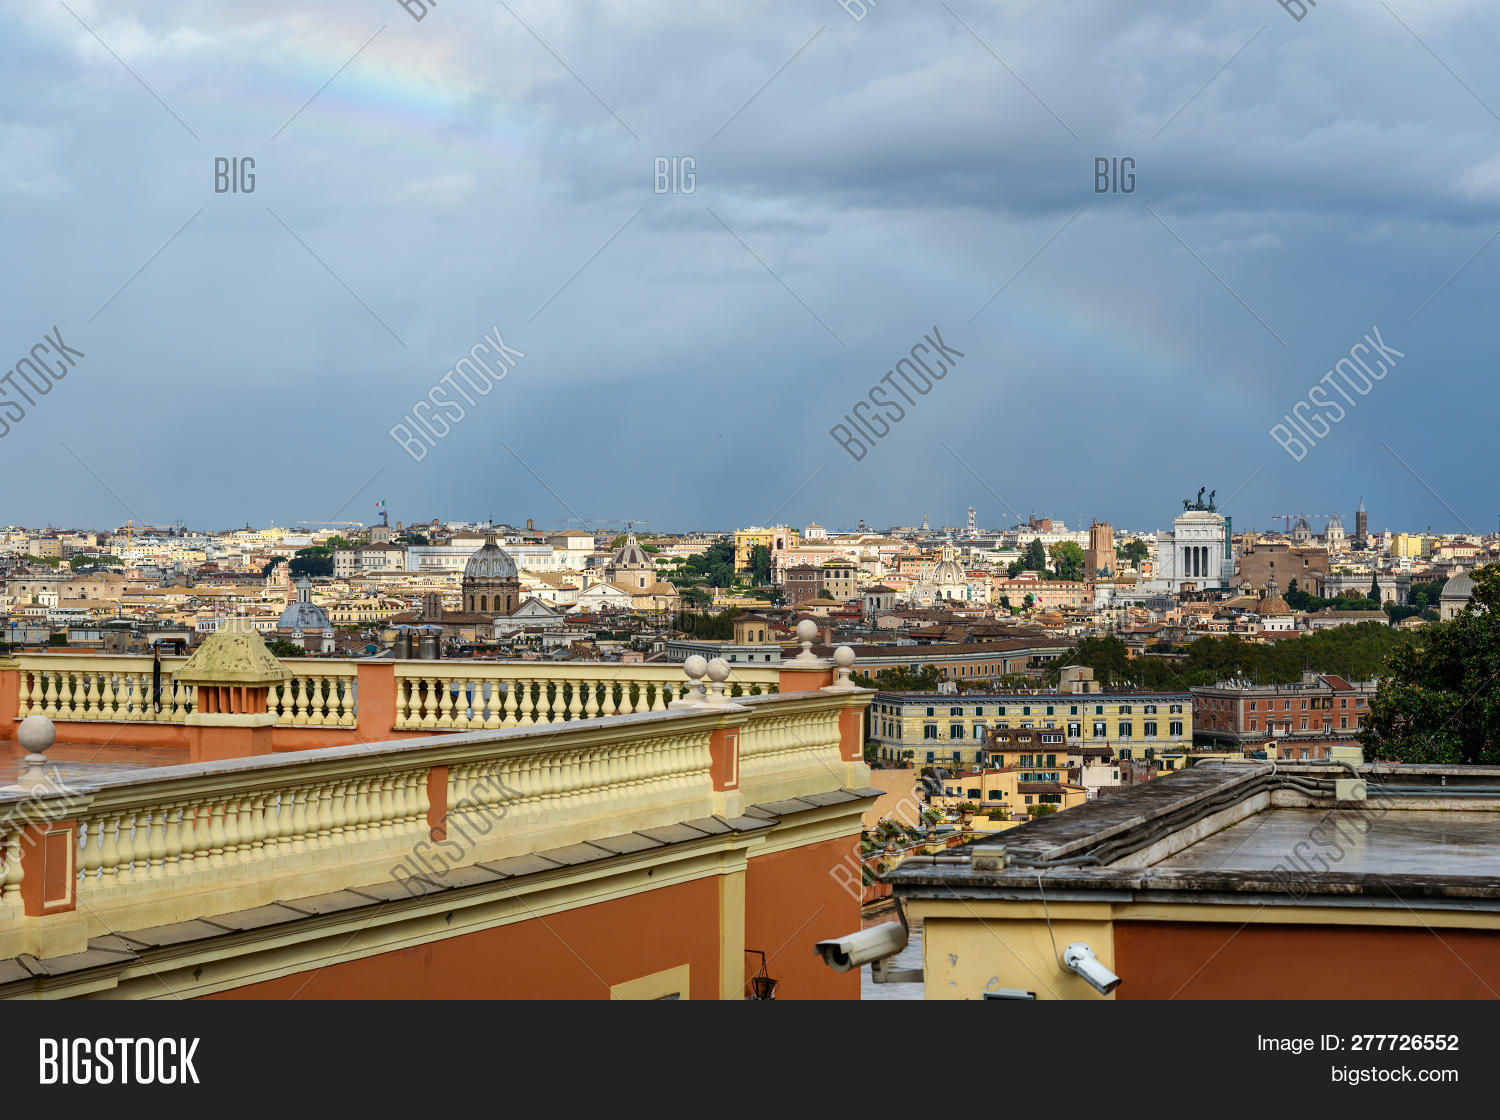 Rainbow Over Rome Image Photo Free Trial Bigstock